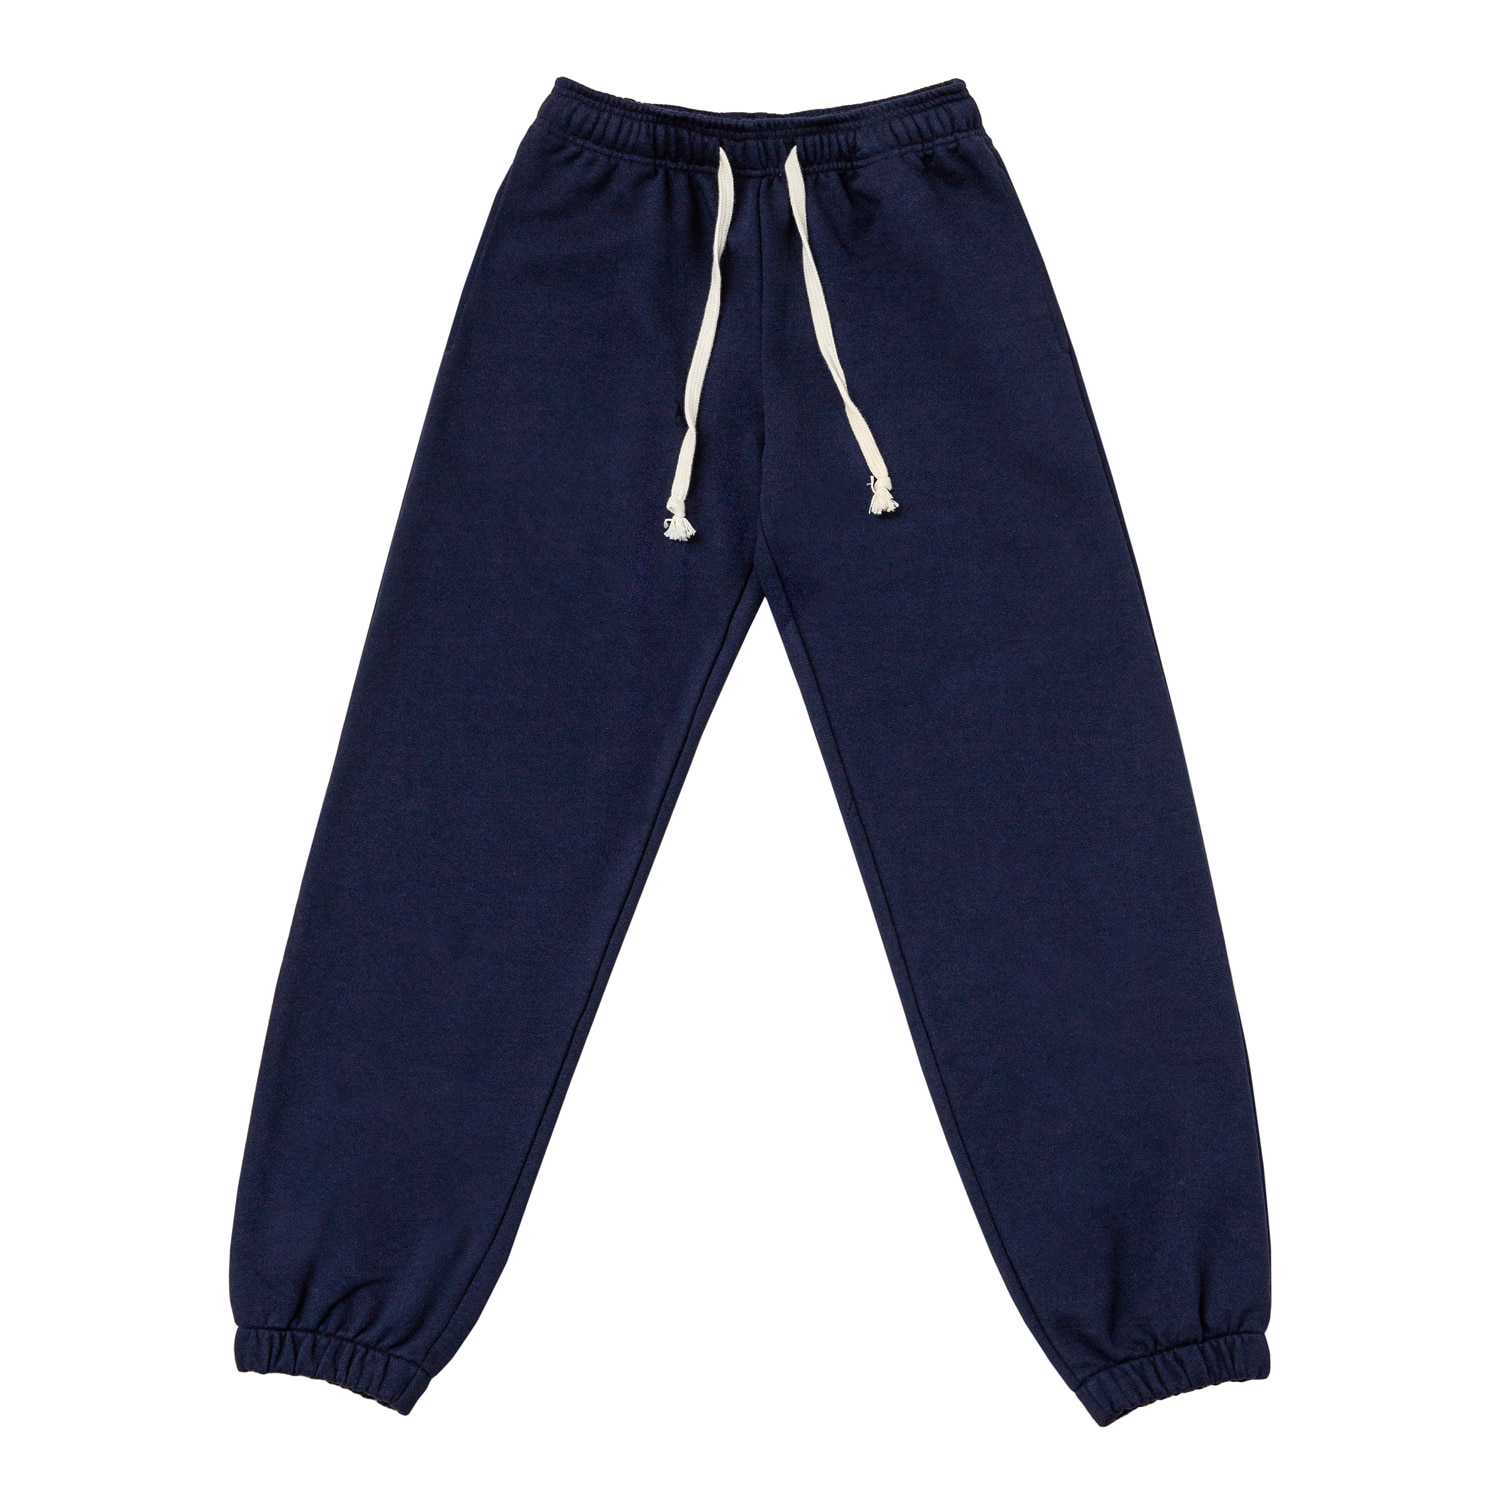 3rd RE) ORE COTTON 005 jogger PT Navy